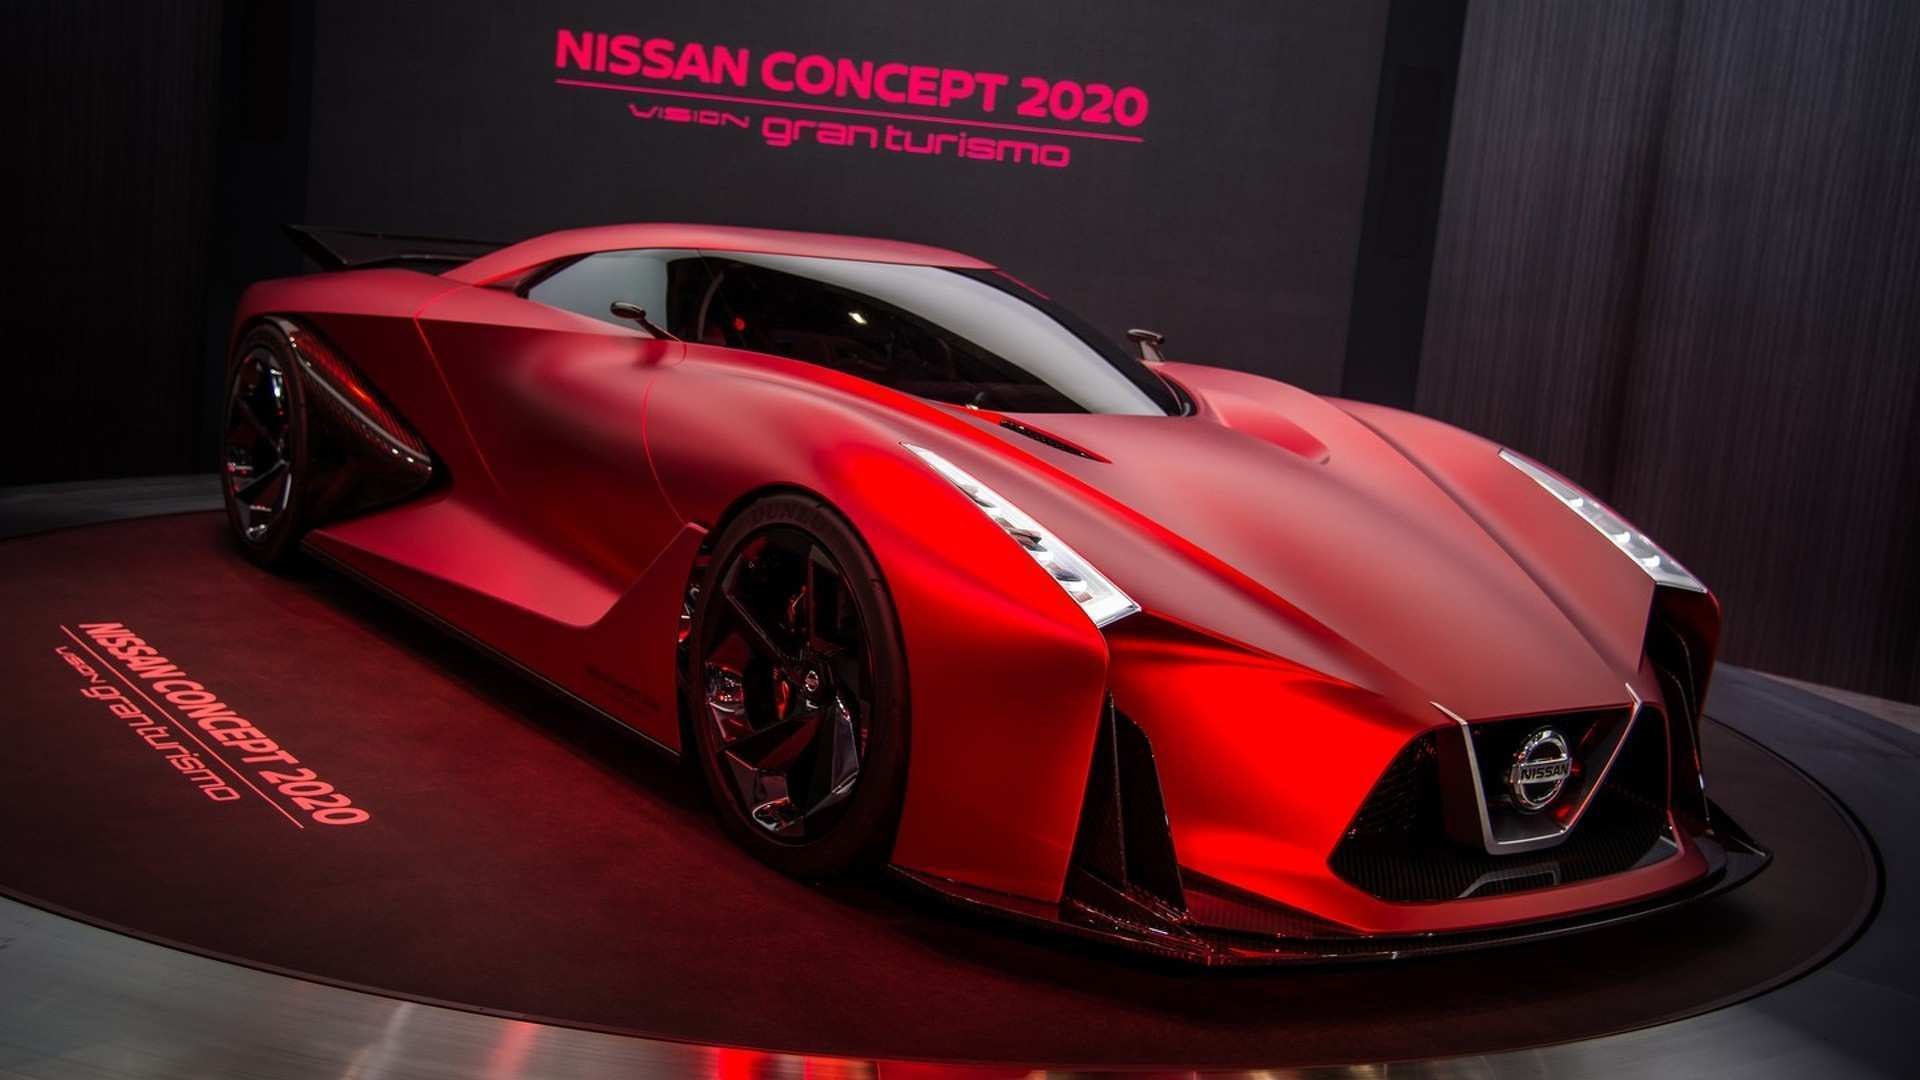 36 Concept of New Gtr Nissan 2020 Price and Review for New Gtr Nissan 2020